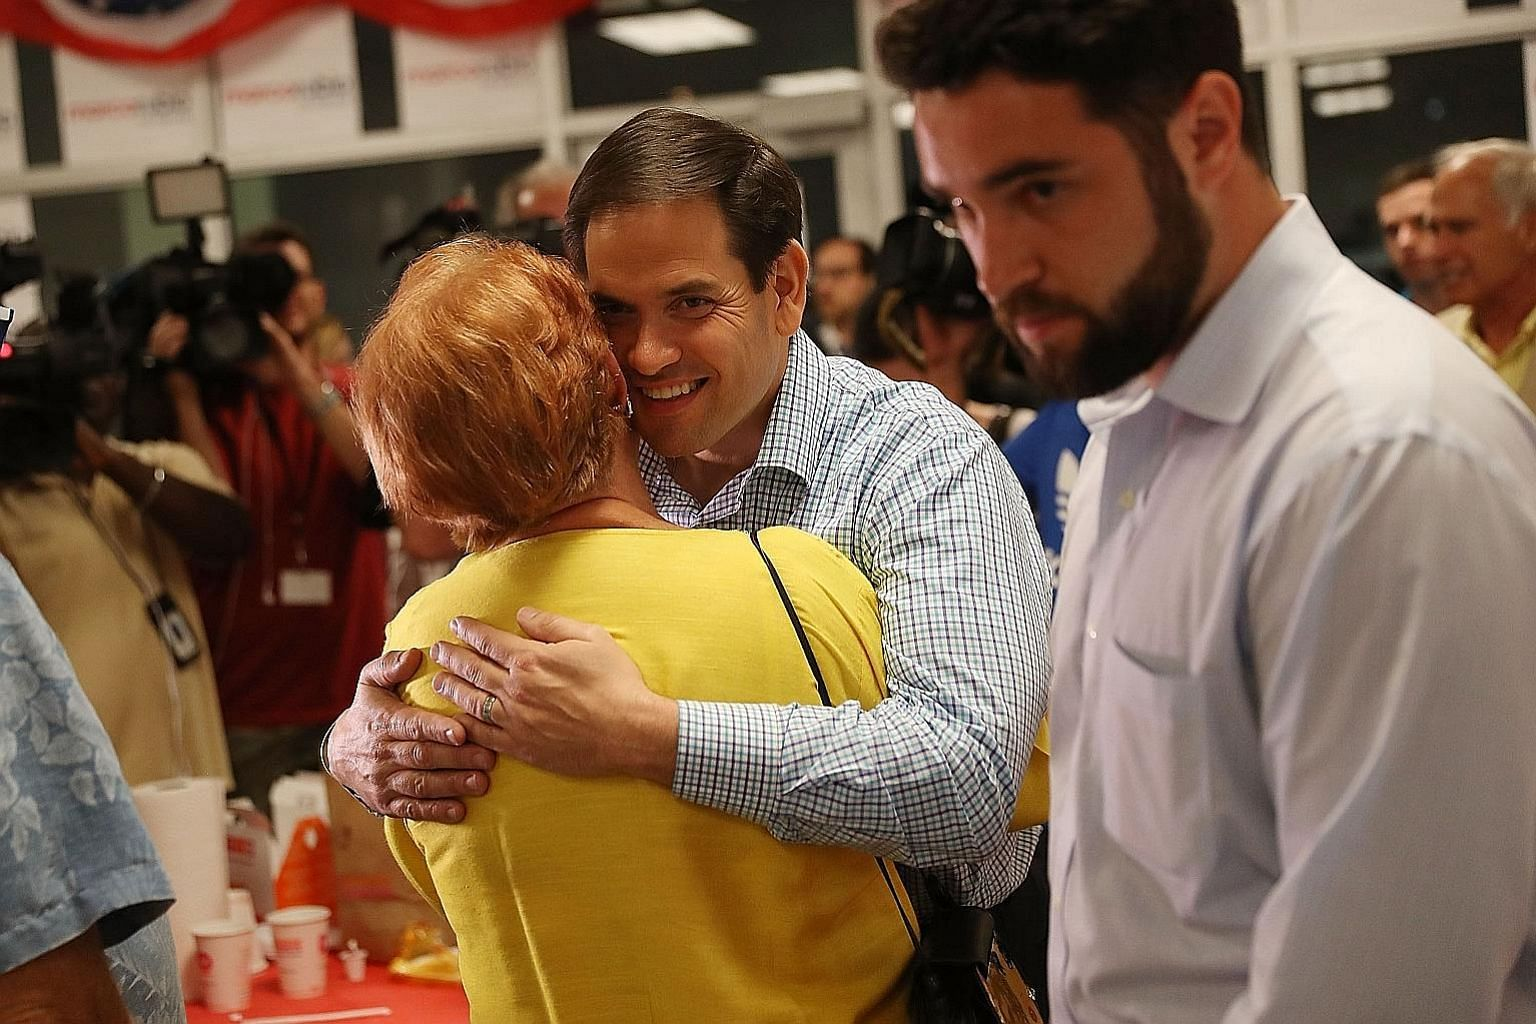 Florida Senator Rubio thanking supporters on the day before the state's primary election late last month, which he won convincingly. His opponent was Mr Beruff, who touted himself as a tough-talking political outsider with a hard line on immigration.